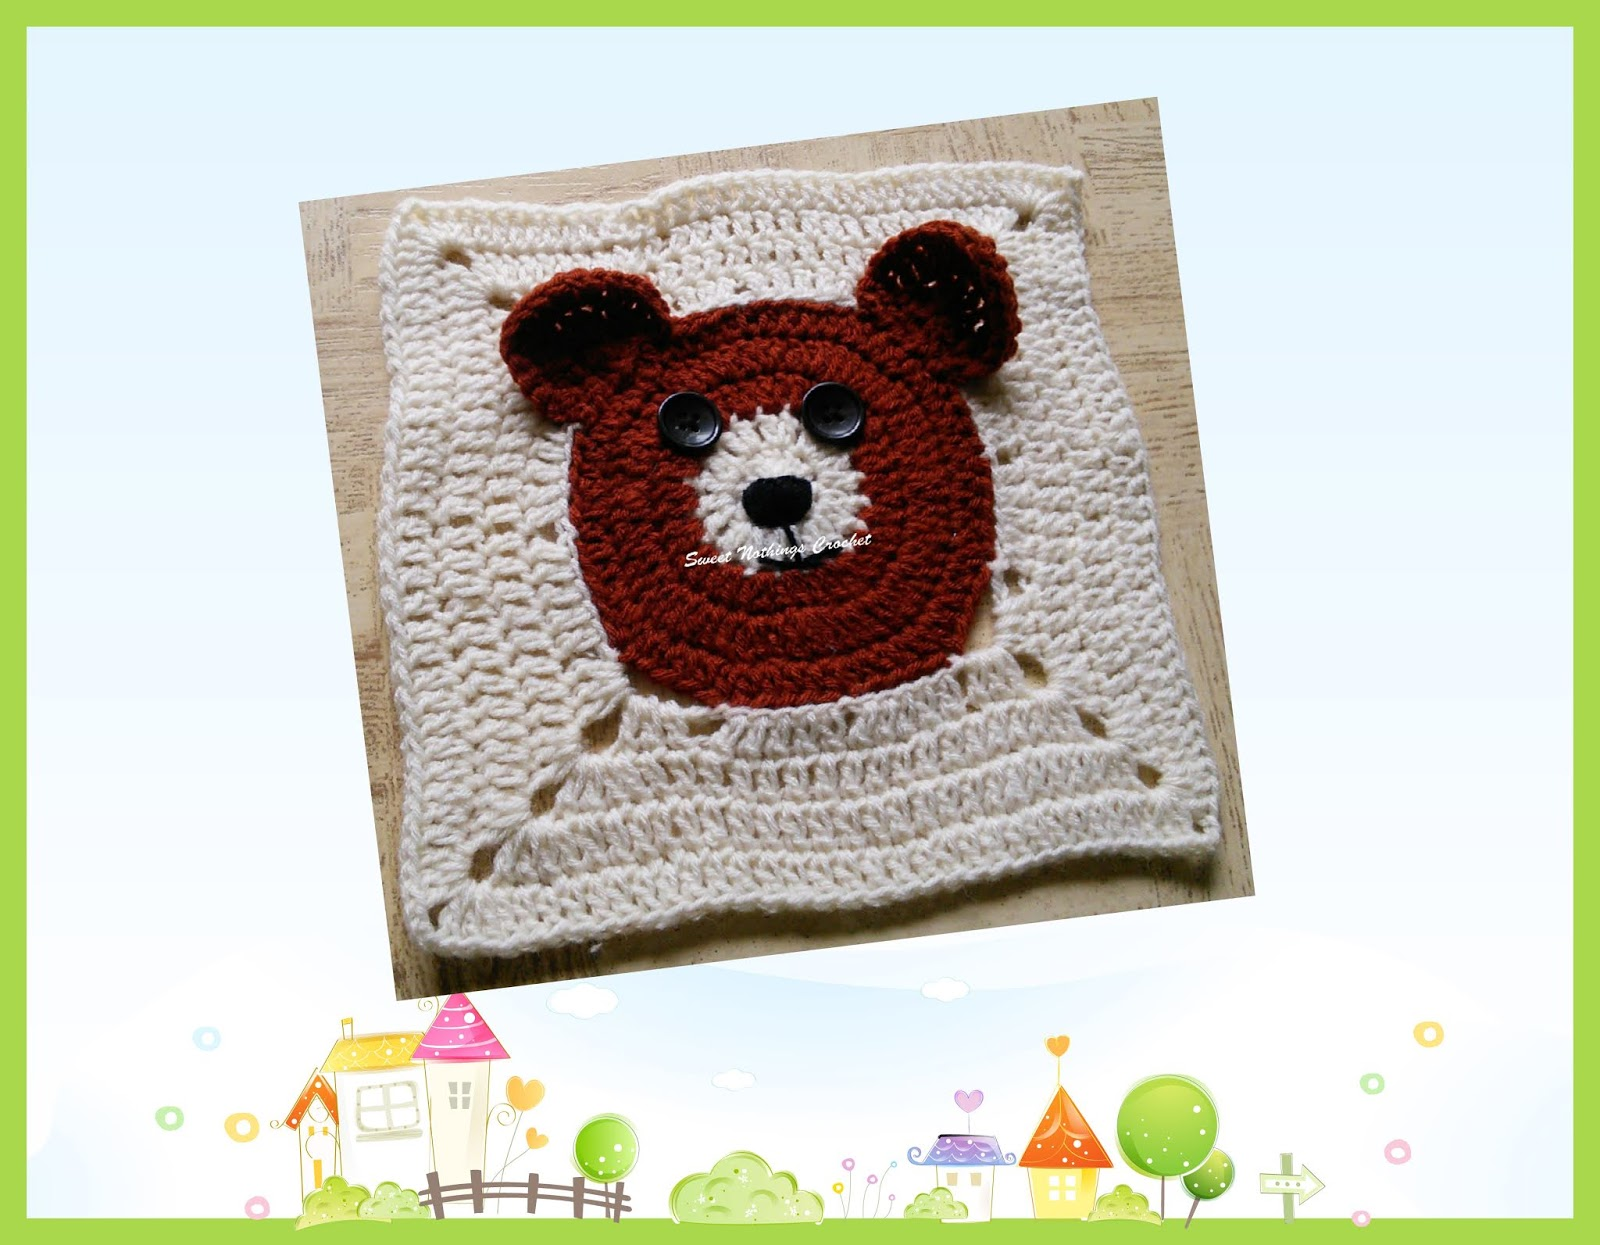 Sweet Nothings Crochet: ADORABLE TEDDY BEAR : GRANNY SQUARE IN THE ...